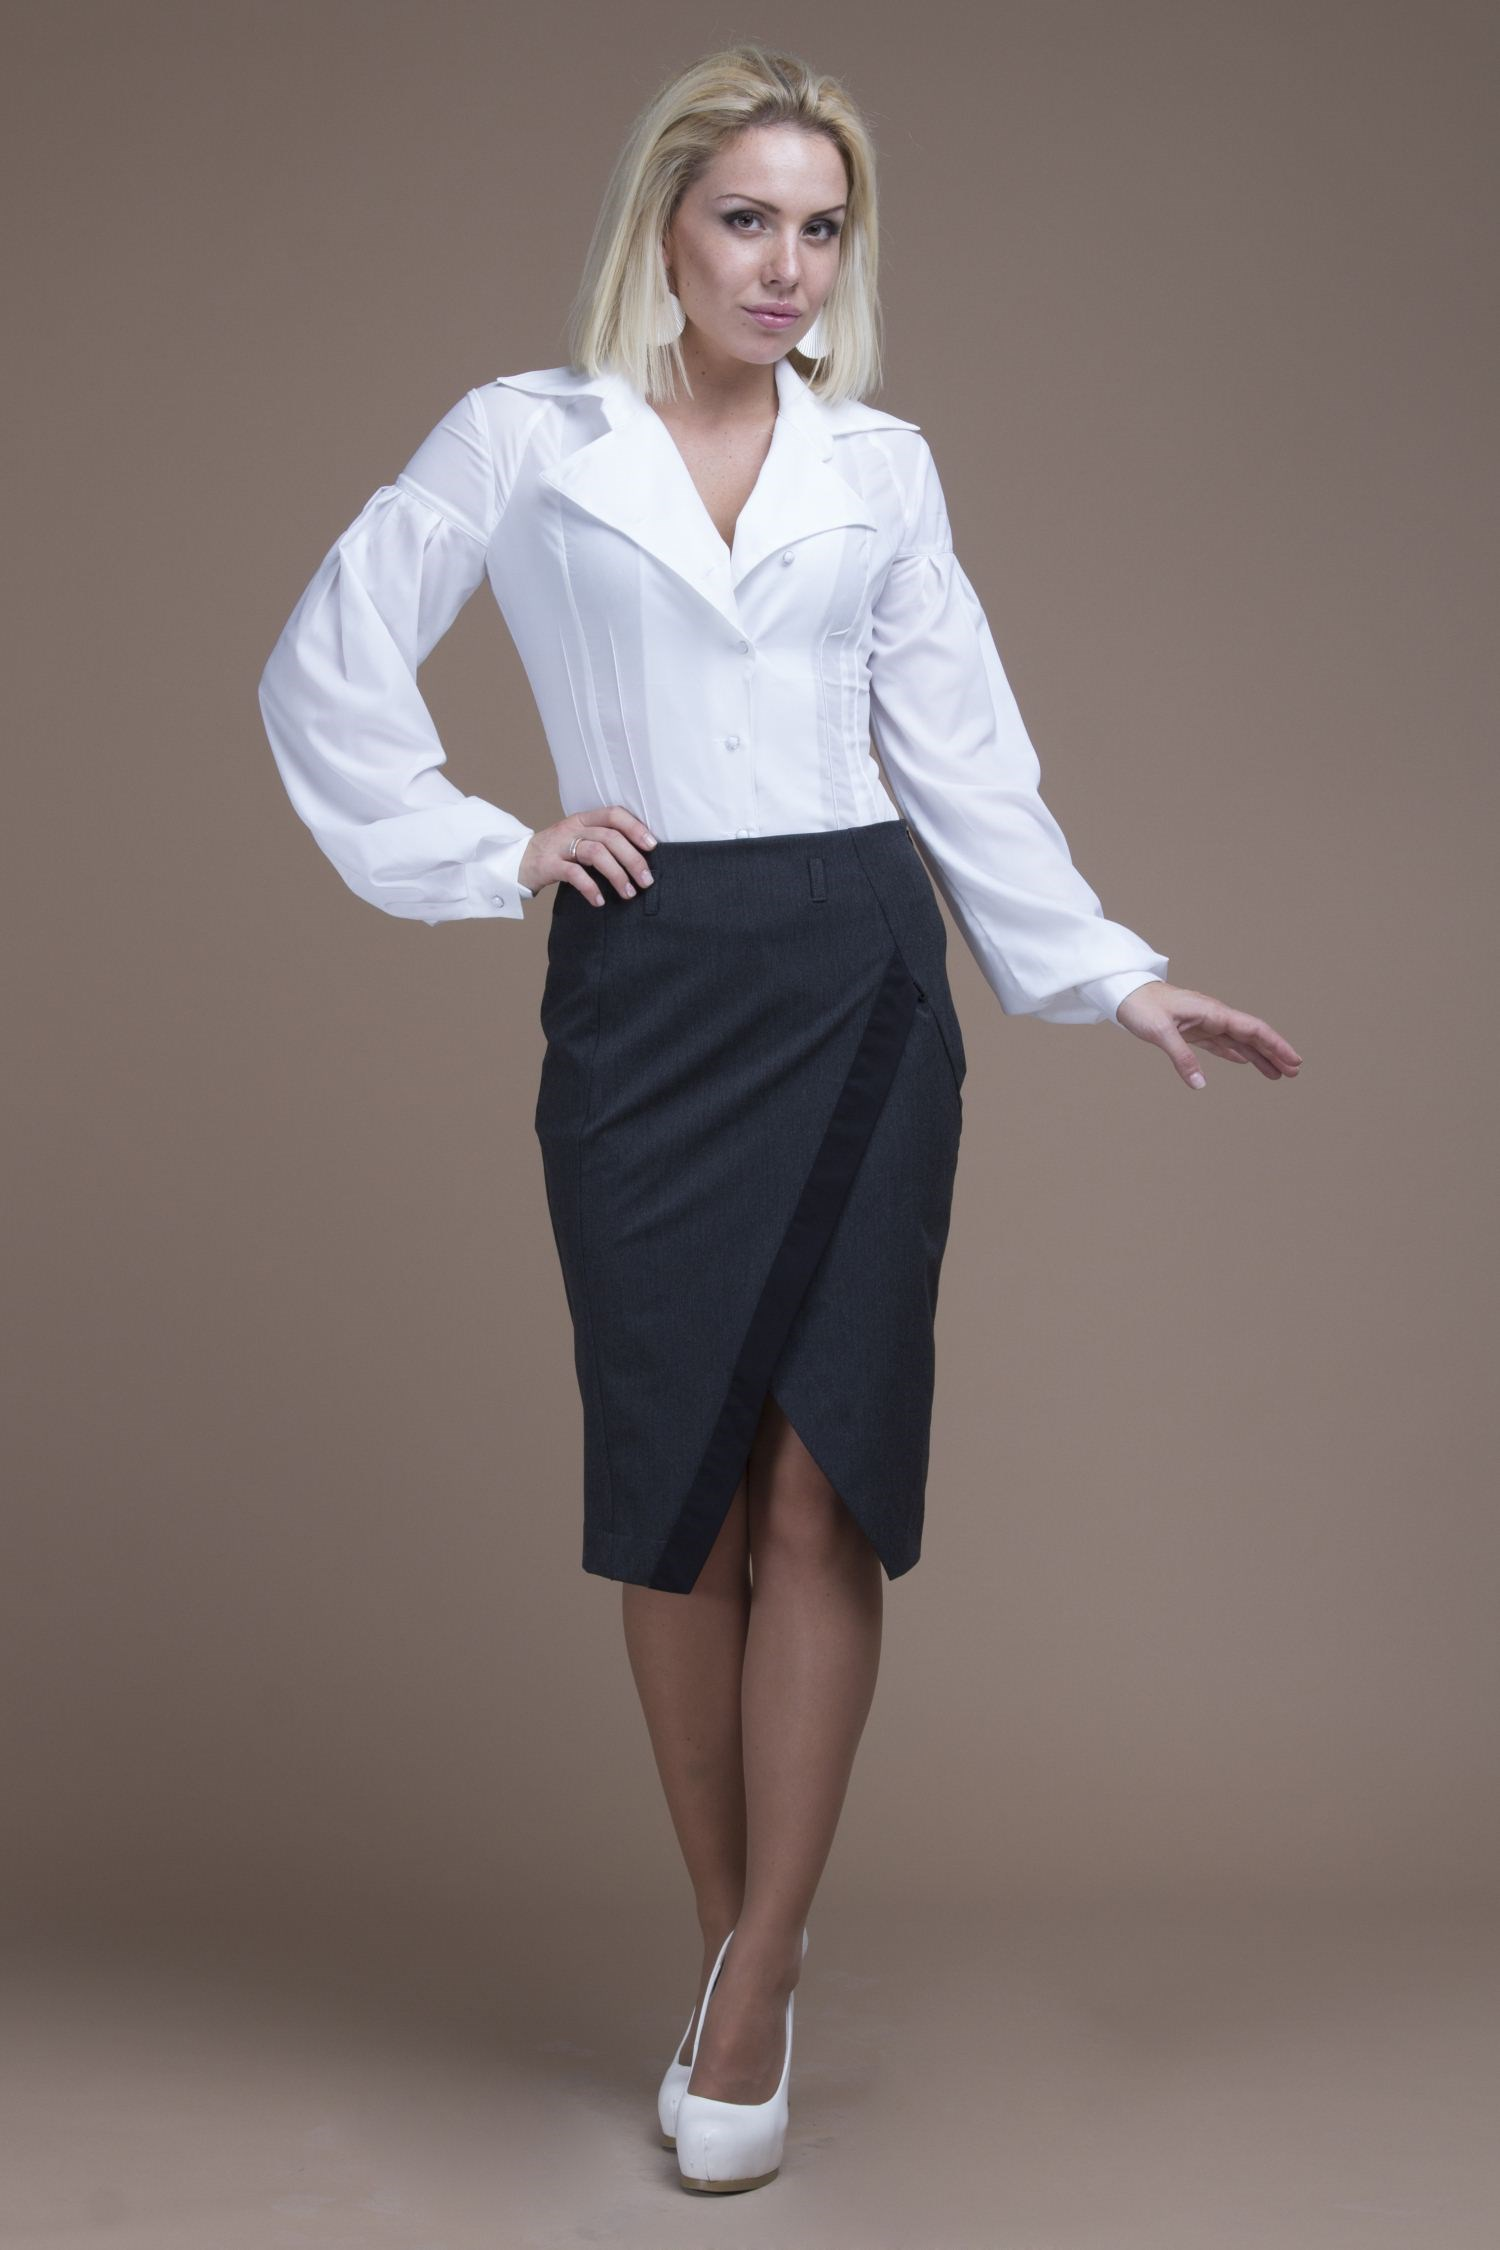 Office pencil skirt with decorative V-neck tie waist plaid pencil skirt